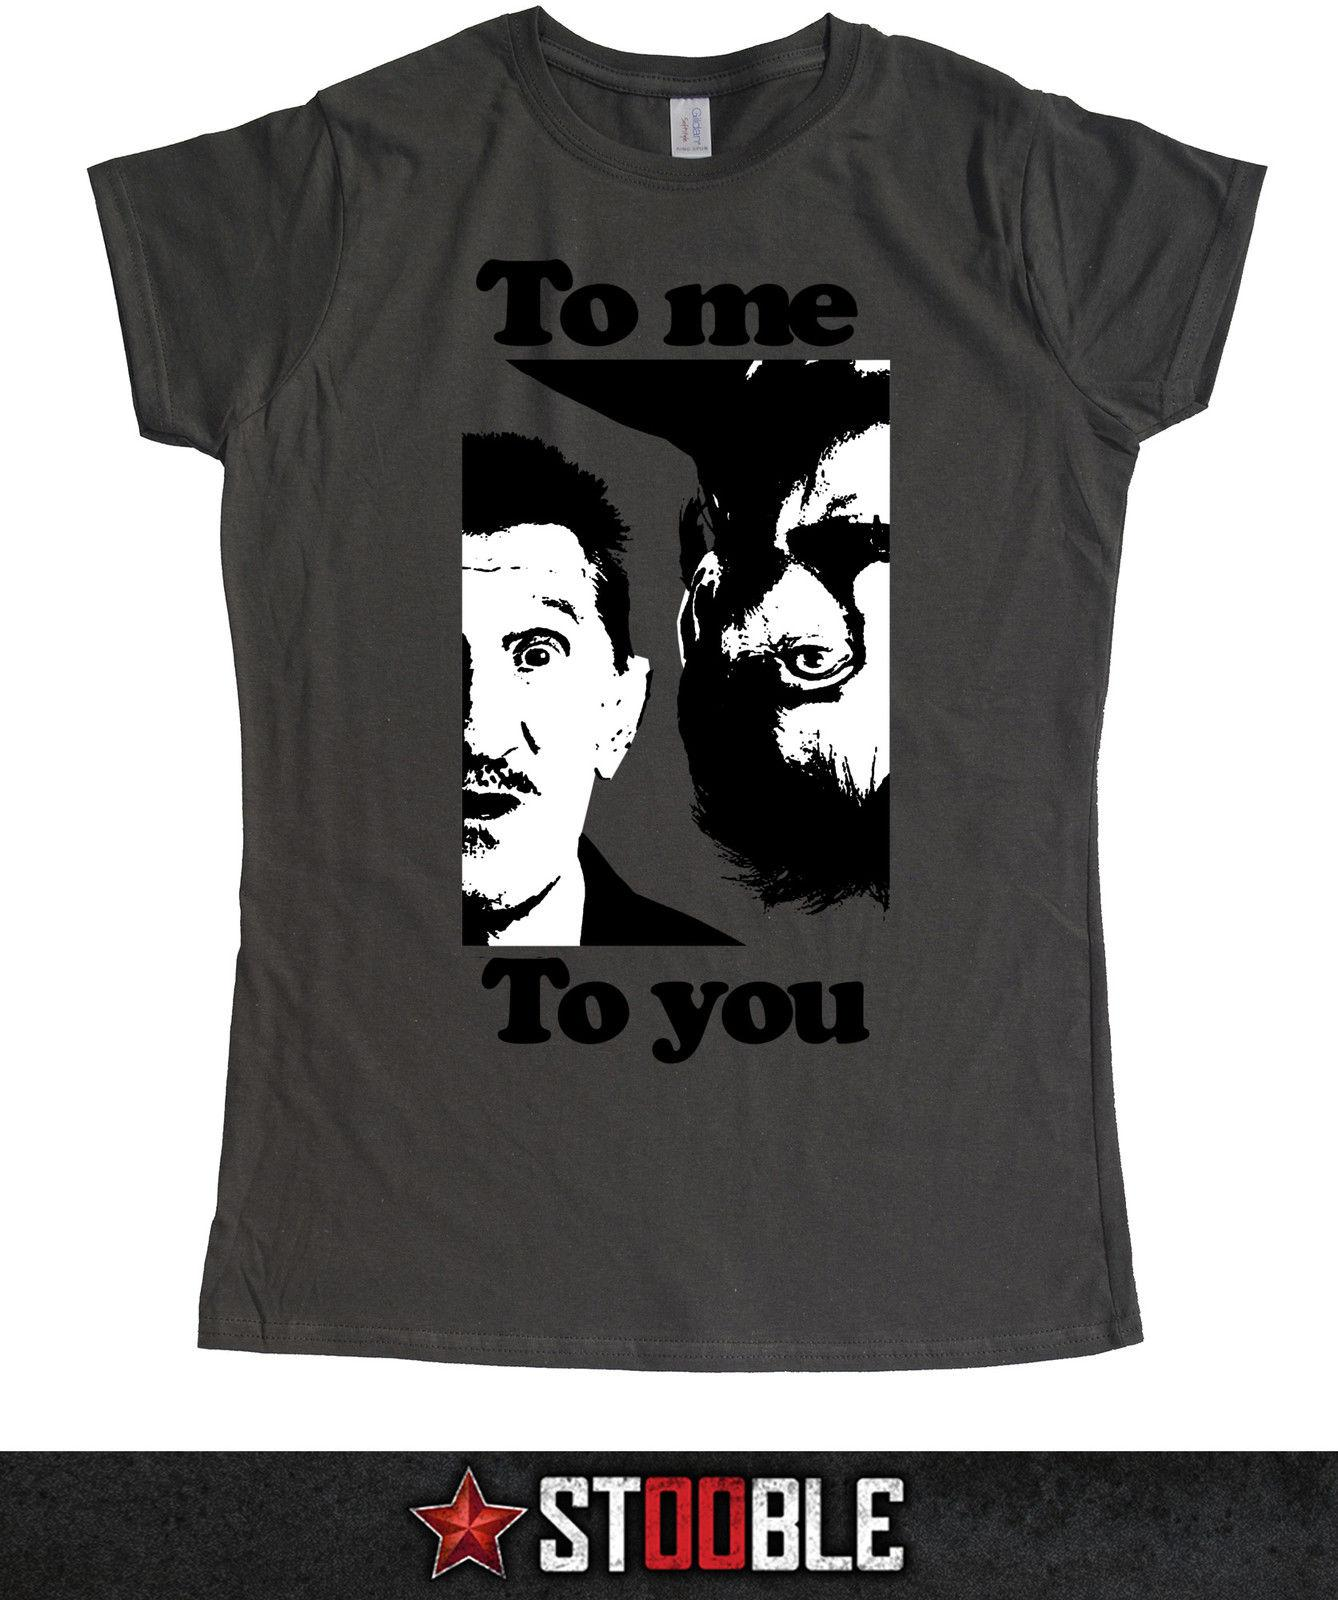 Chuckle Brothers Ladies T-Shirt - Direct from Stockist funny 100% Cotton jacket croatia leather tshirt